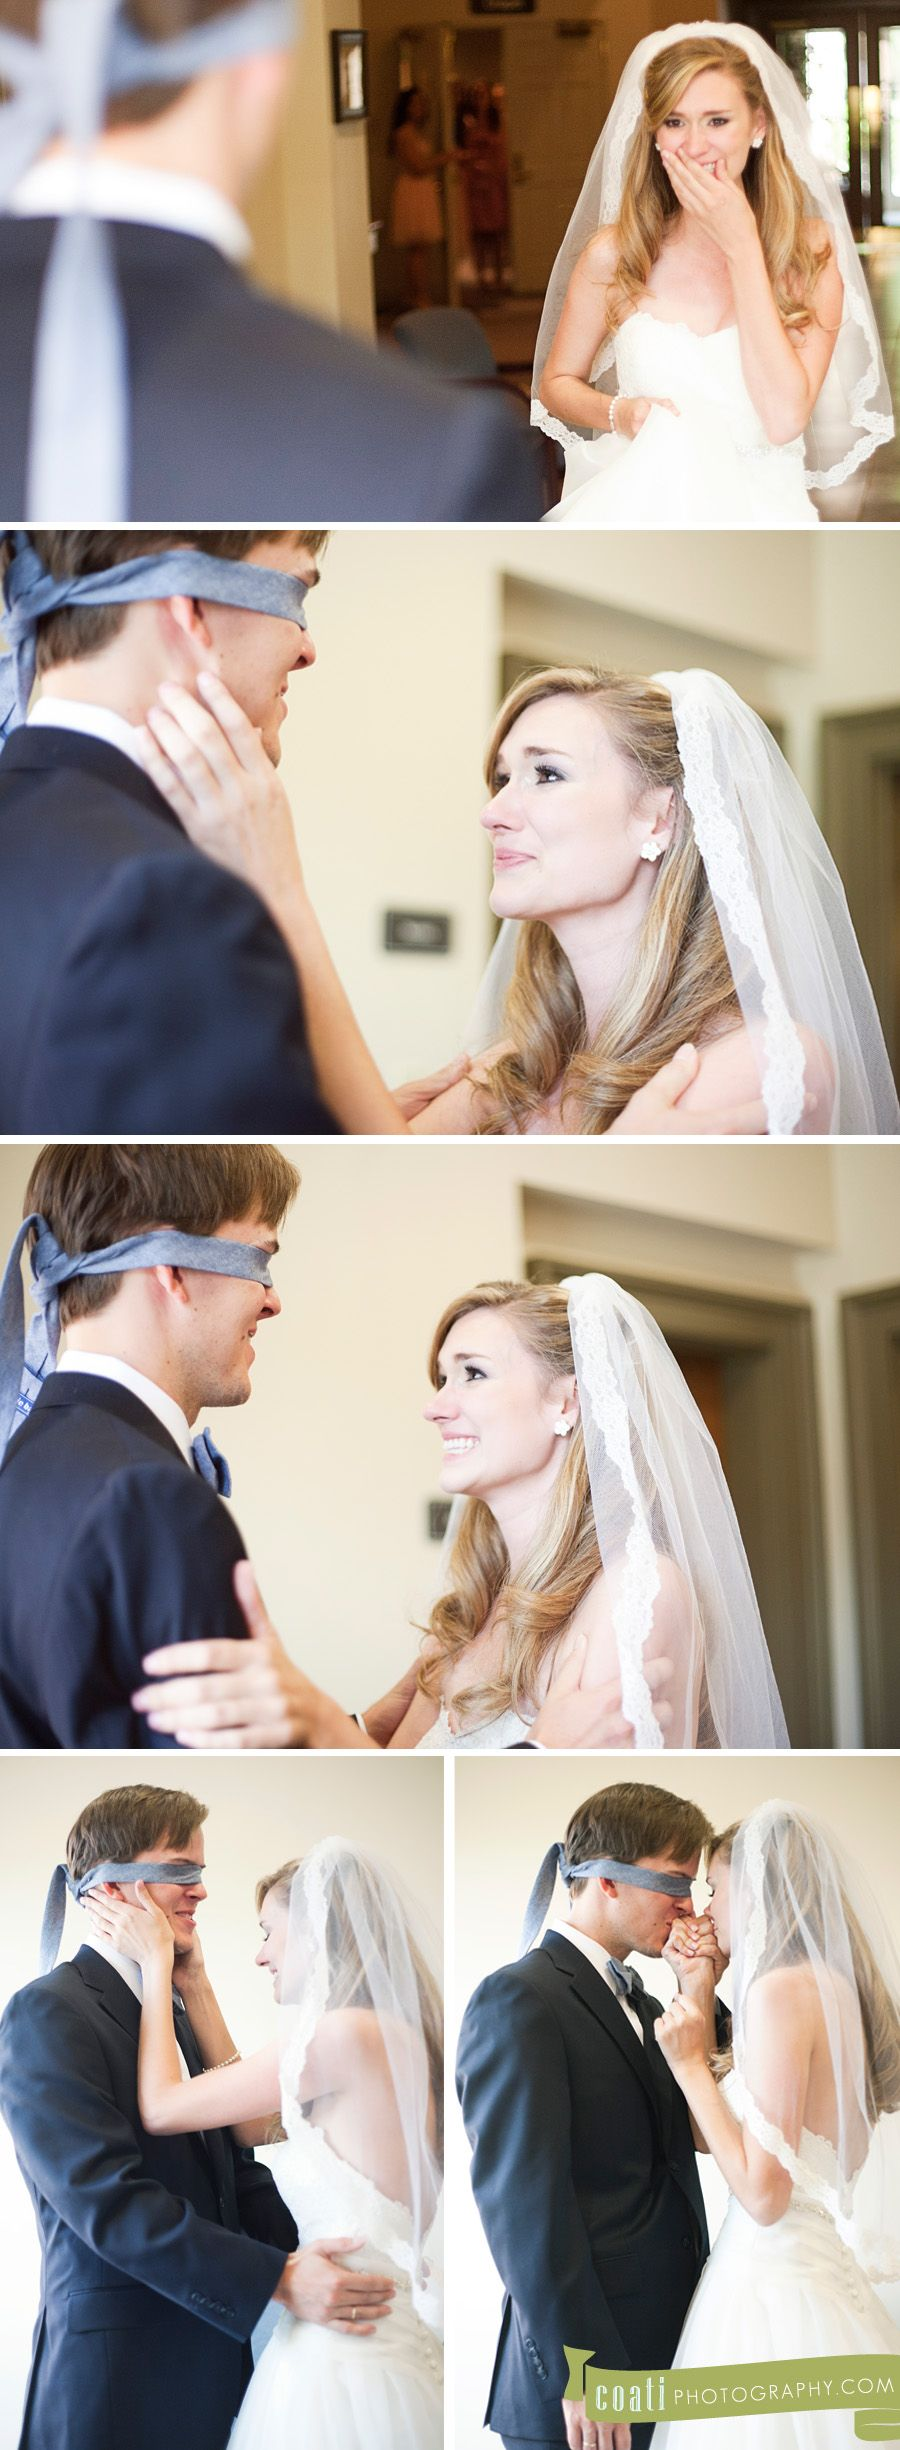 "See the groom without breaking the ""groom shouldn't see the bride before the wedding"" rule! - these pictures are adorable. one of the cutest things ive ever seen"